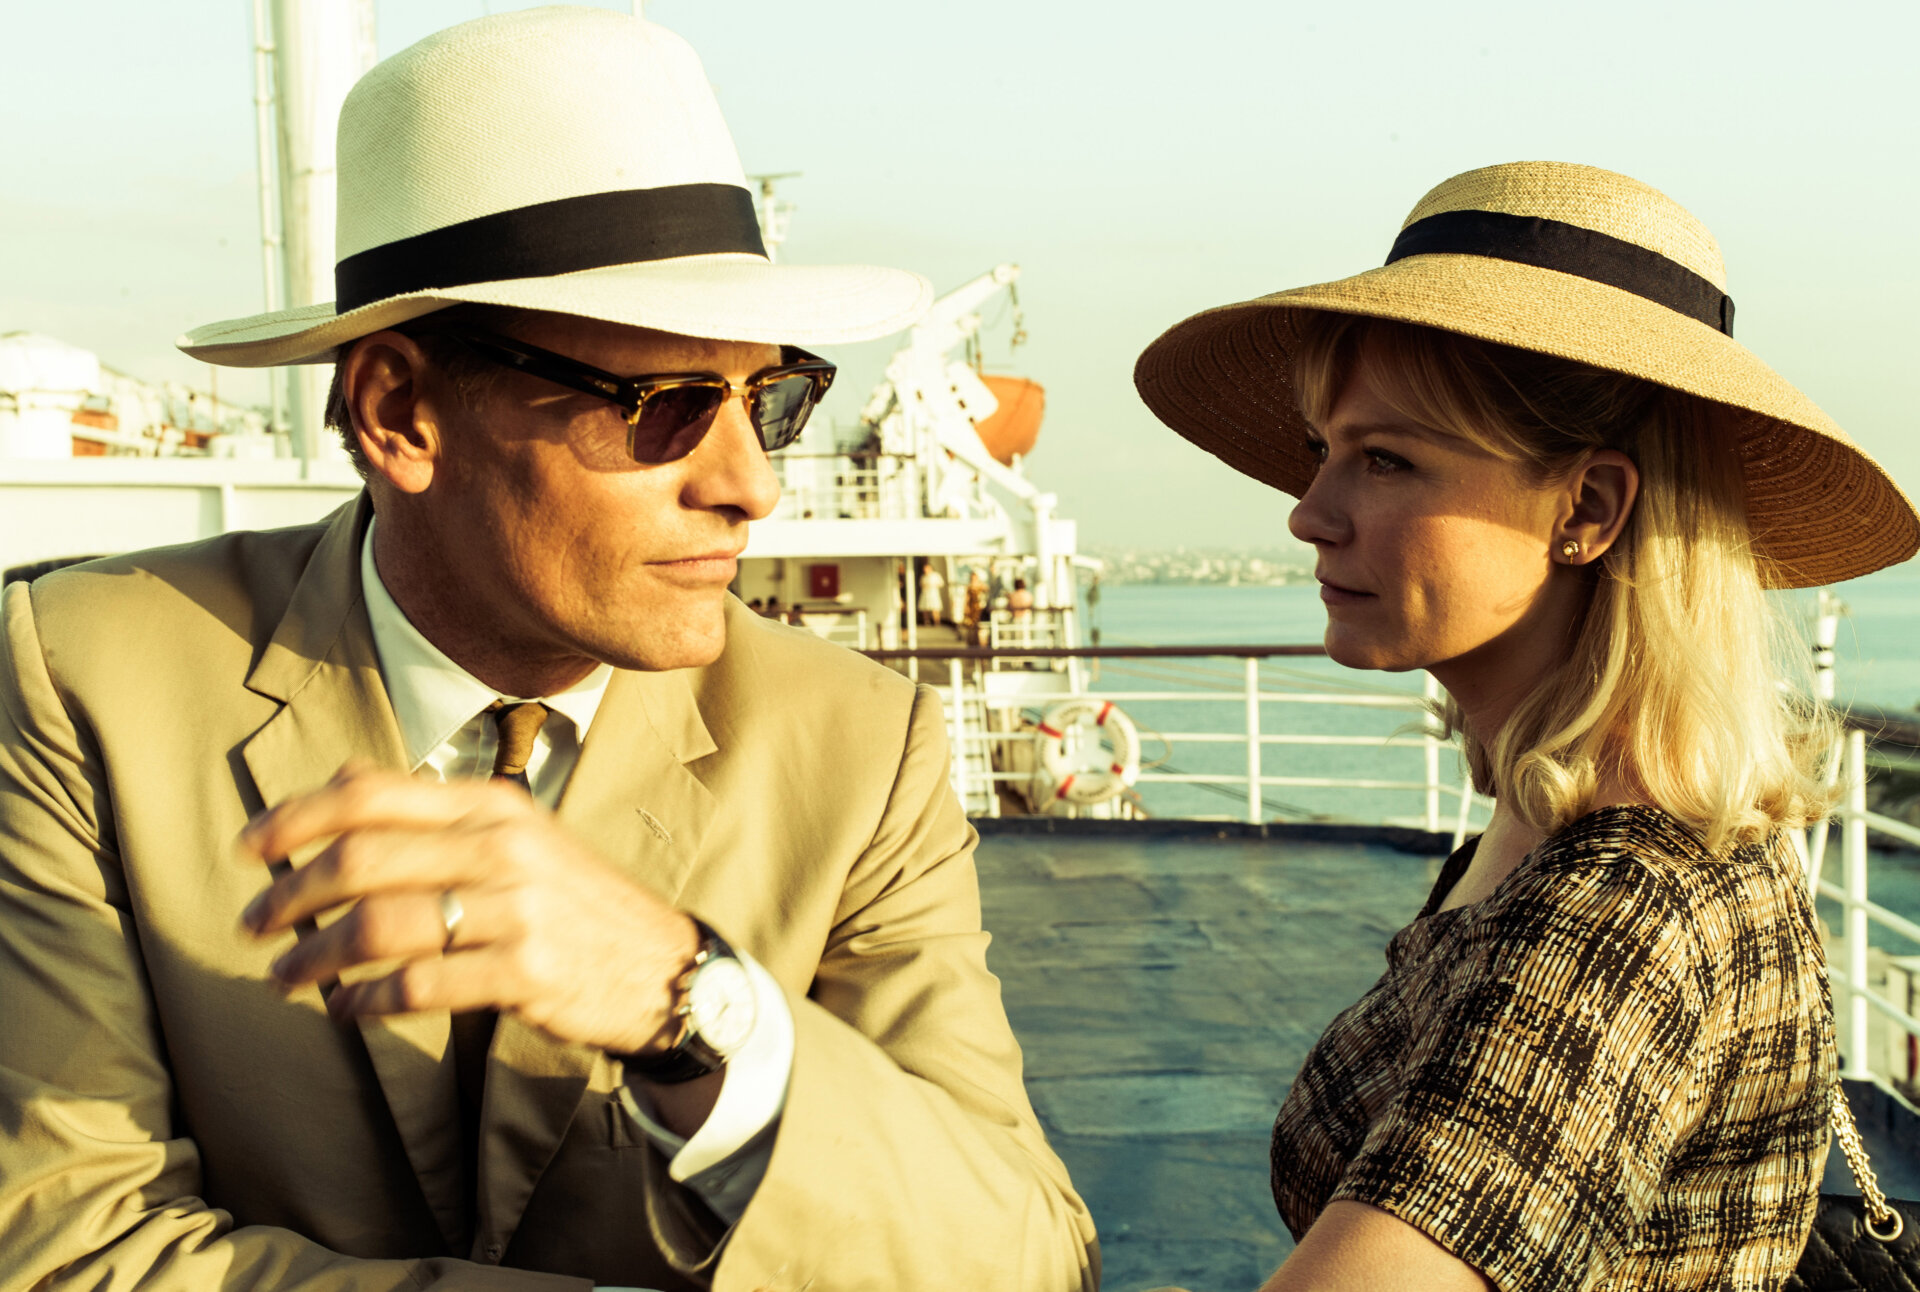 The Two Faces of January film still